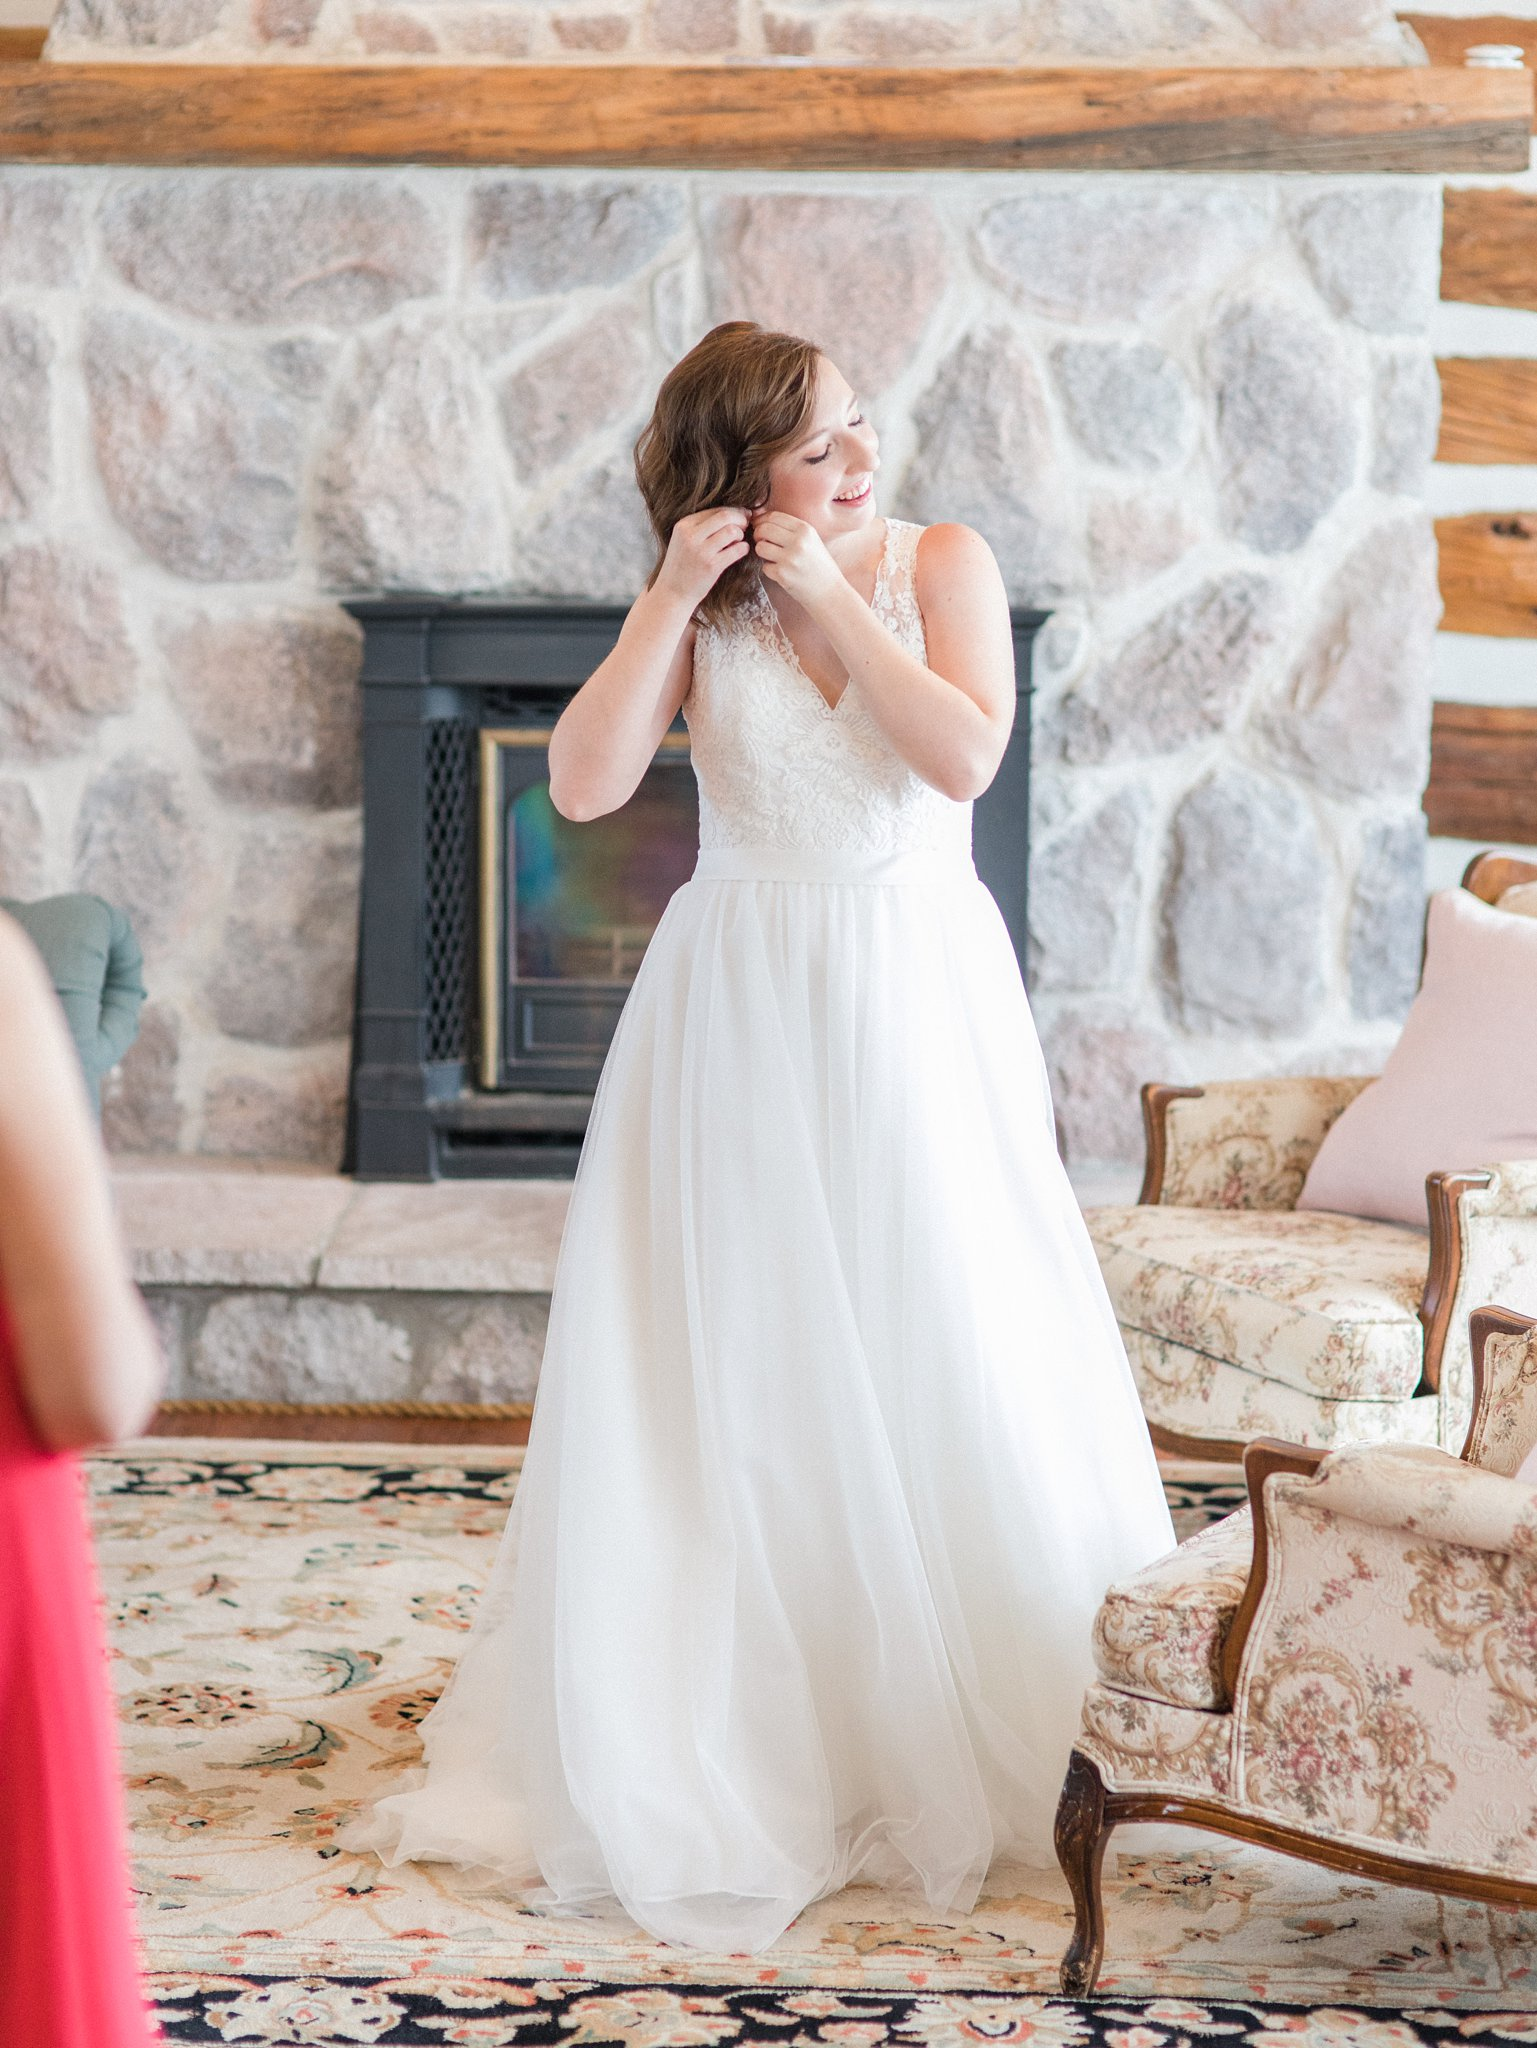 Sarah Walsh Bridal earrings Dog-friendly wedding venue Ottawa Stonefields Amy Pinder Photography